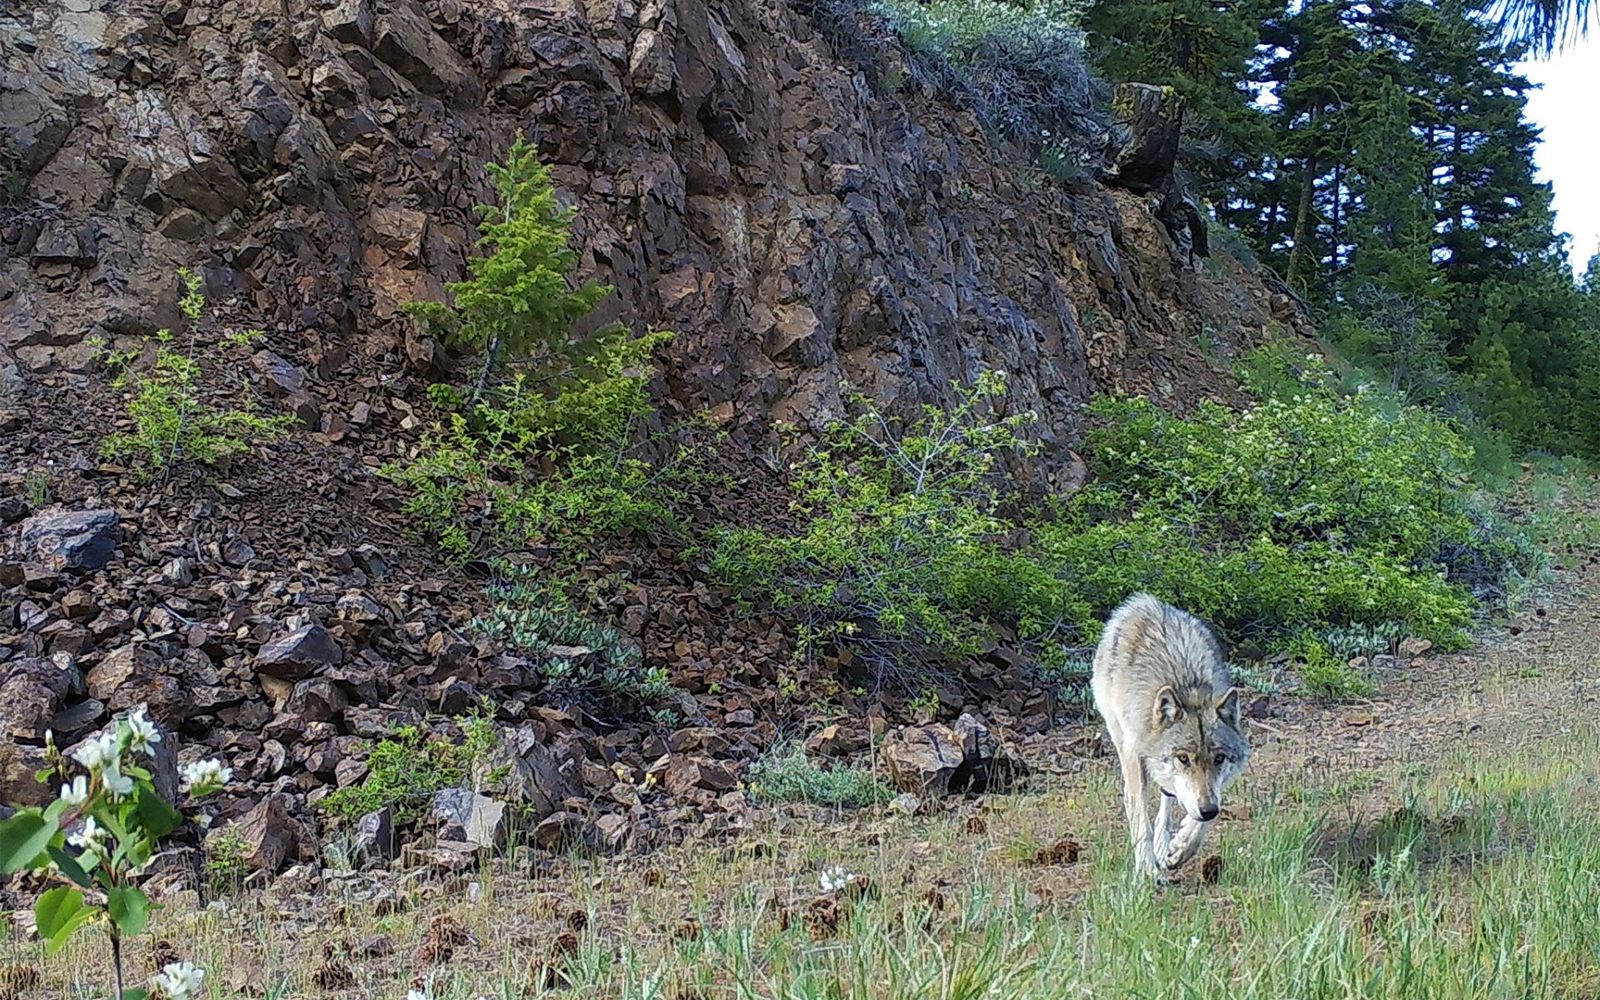 Victory for Washington Wolves, Governor Inslee Grants Petition for Enforceable Protections!